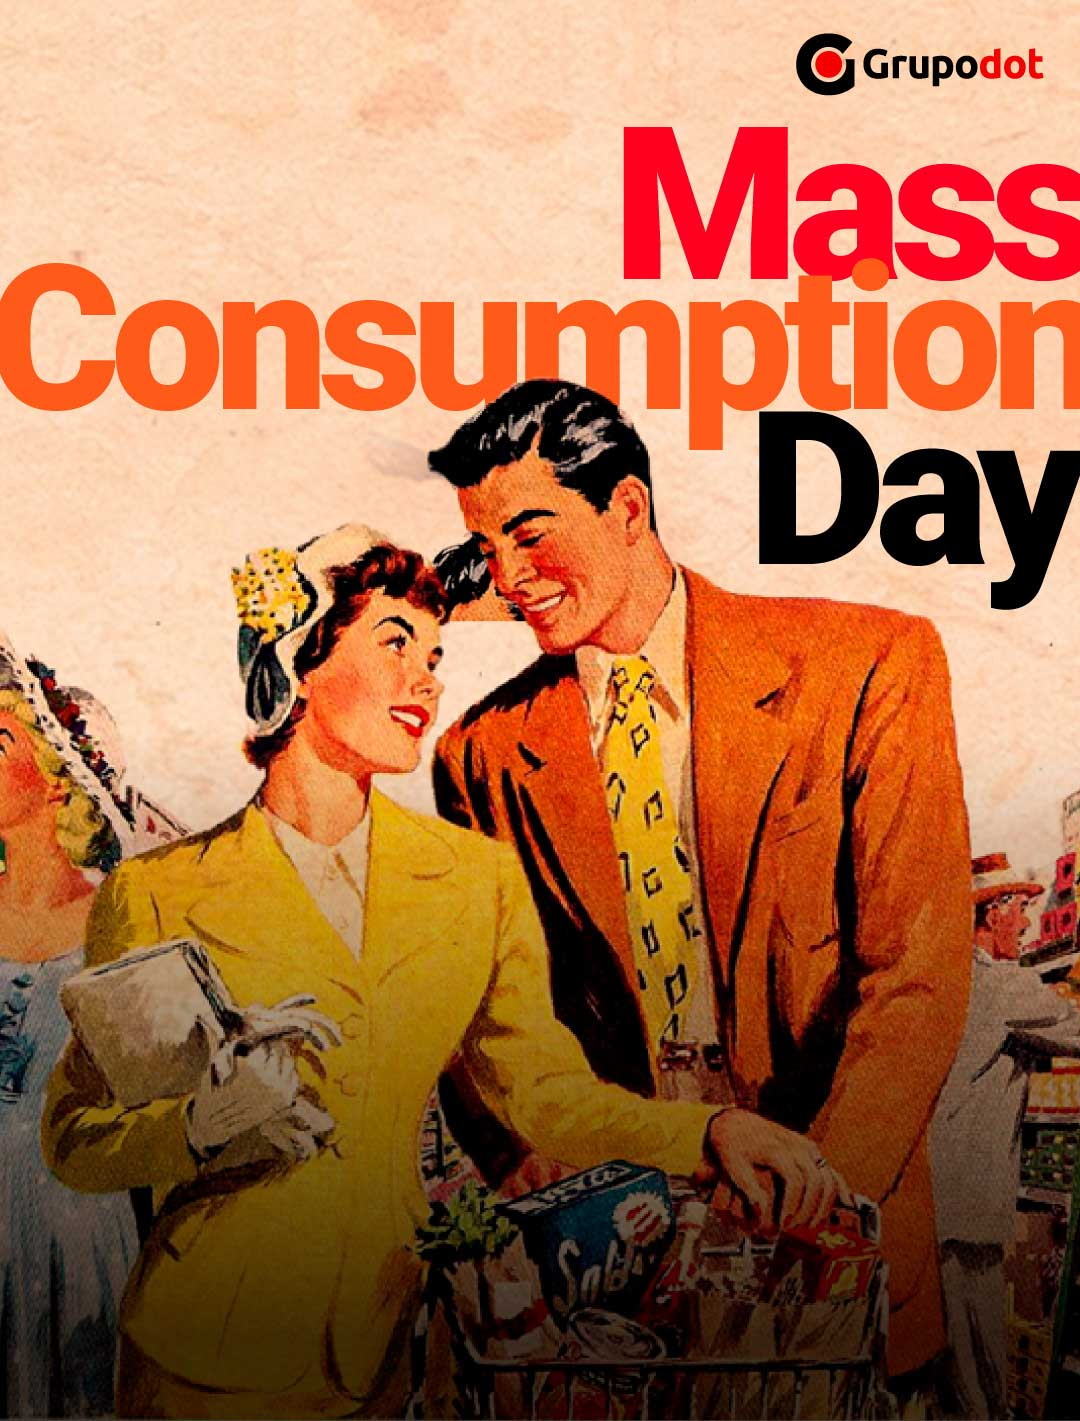 Mass consumption day